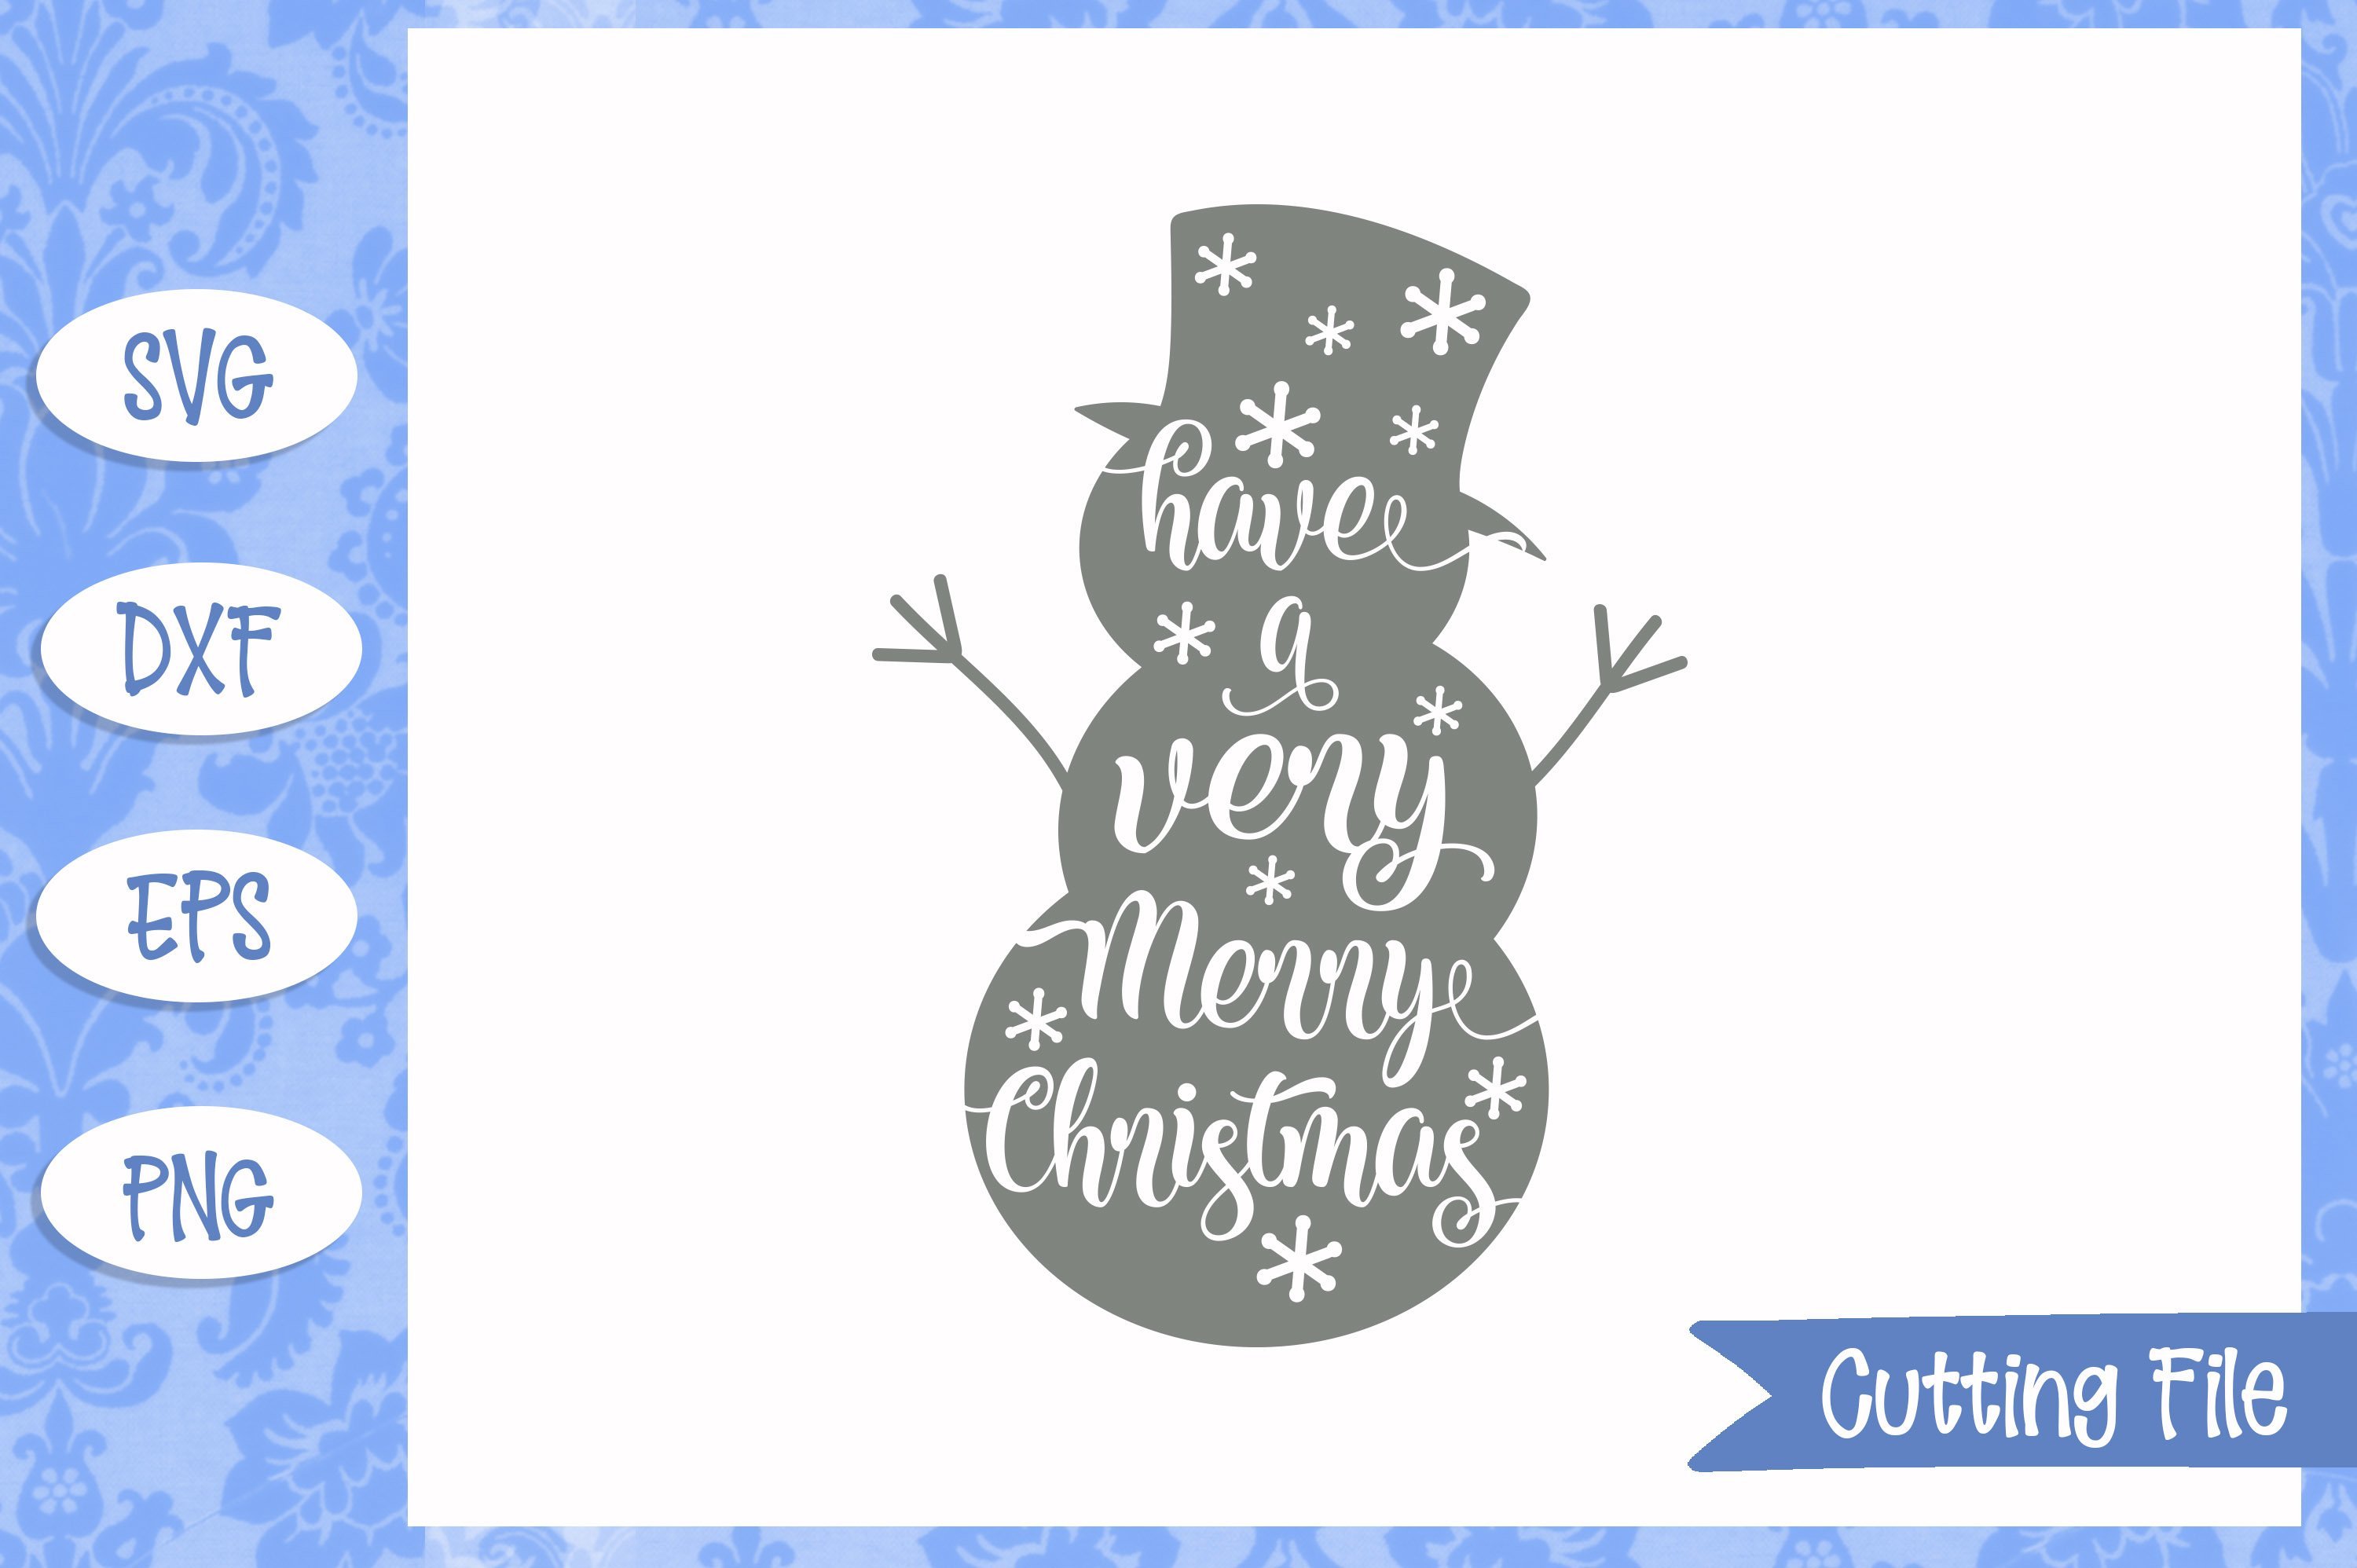 Merry Christmas Snowman SVG File example image 1